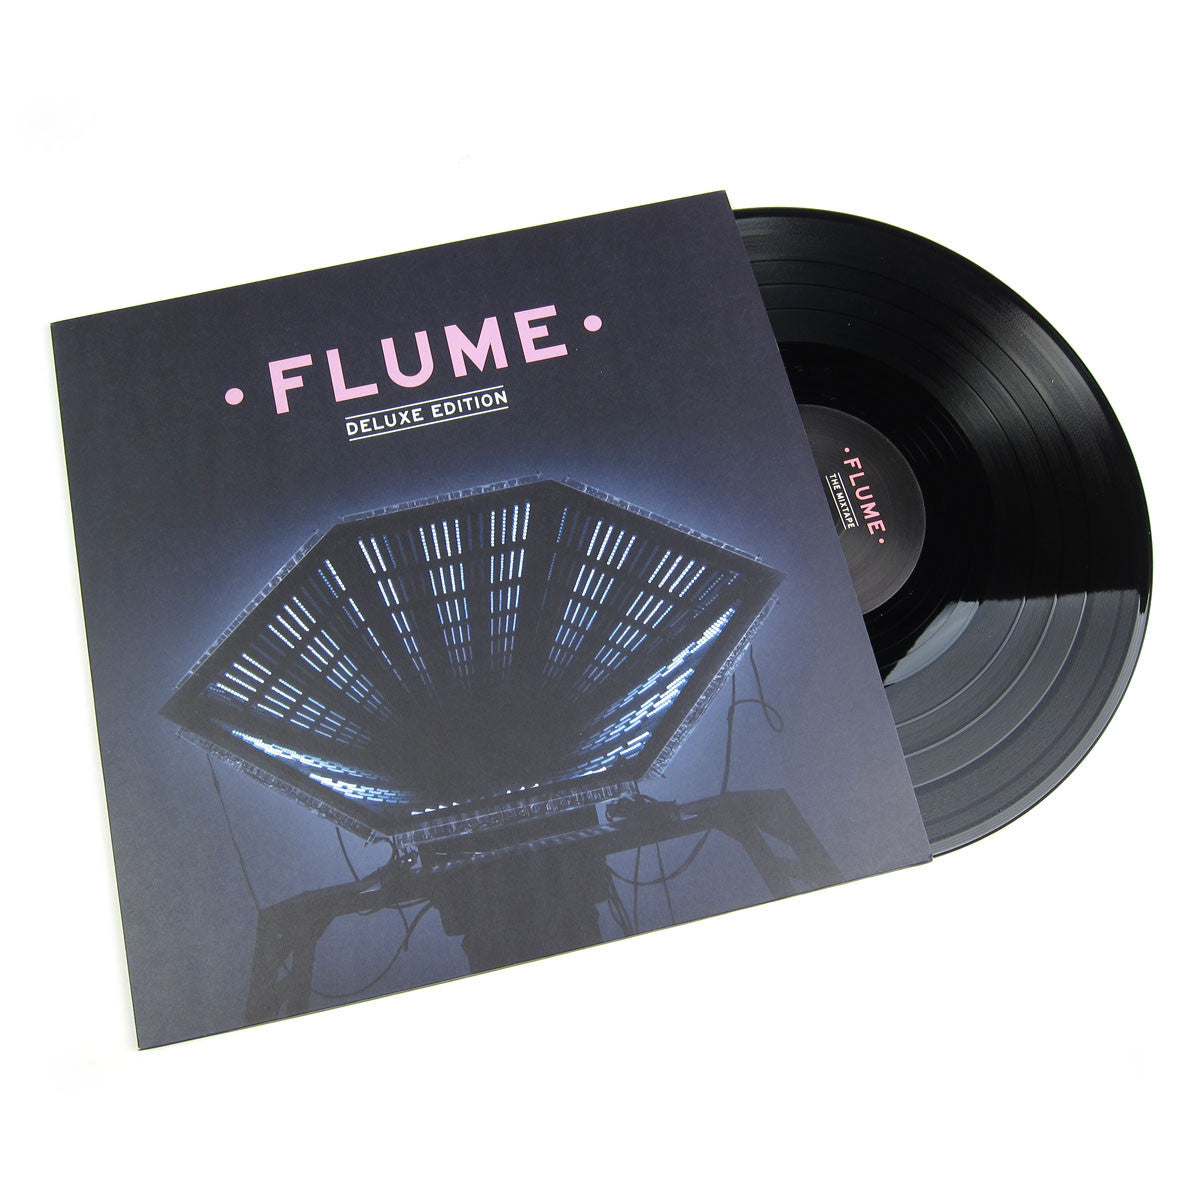 flume deluxe edition cd